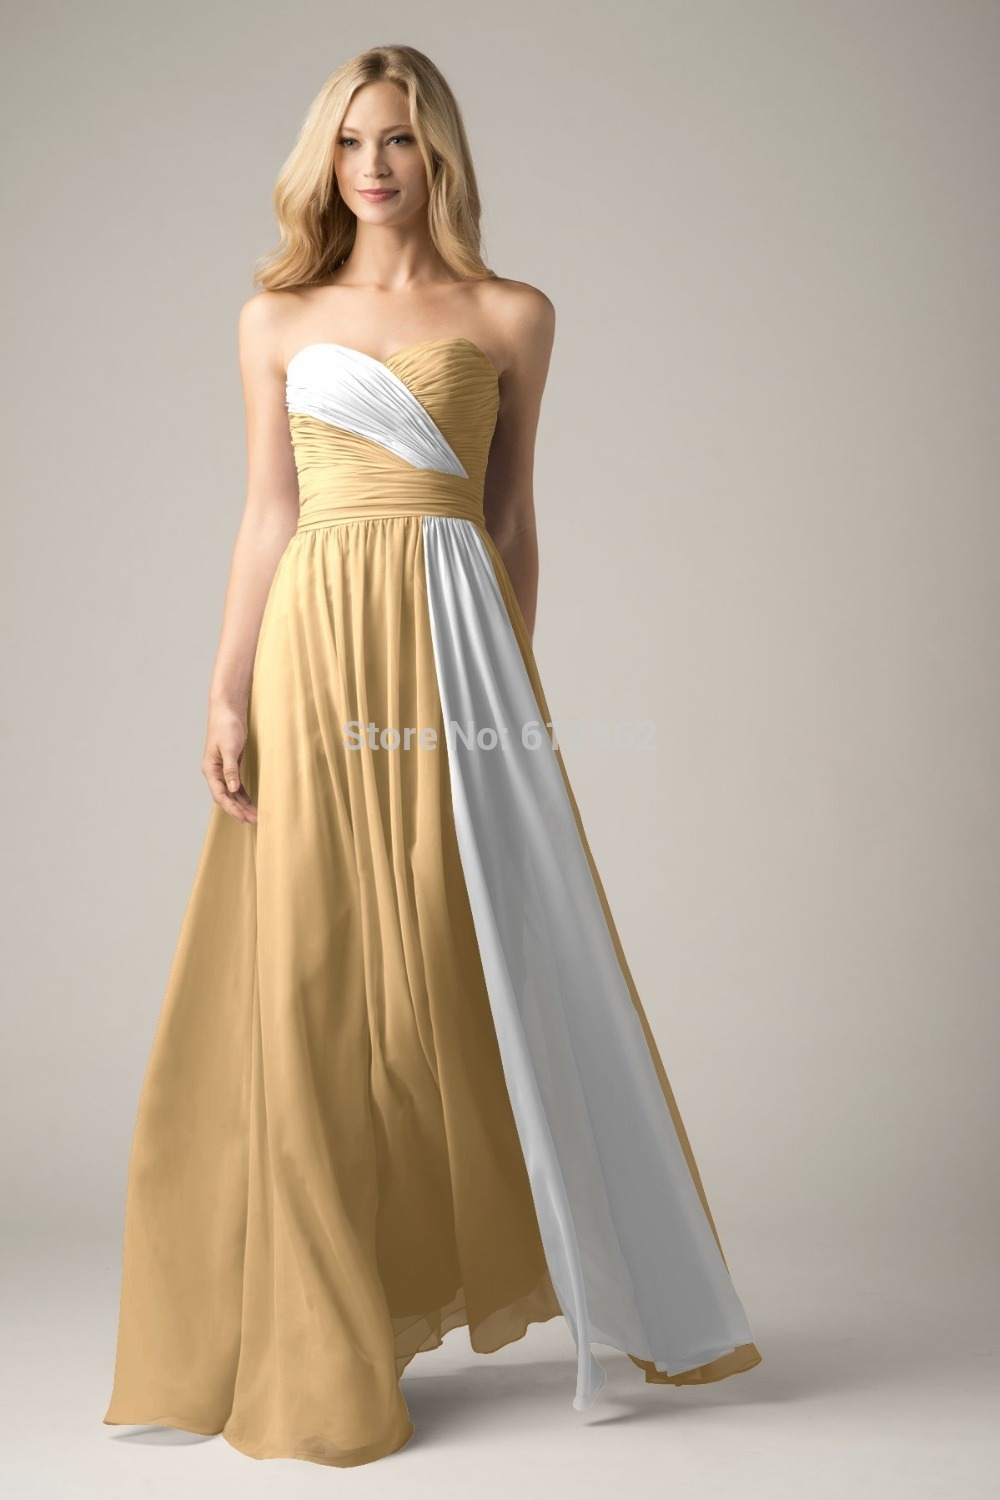 Whiten and Gold Dresses